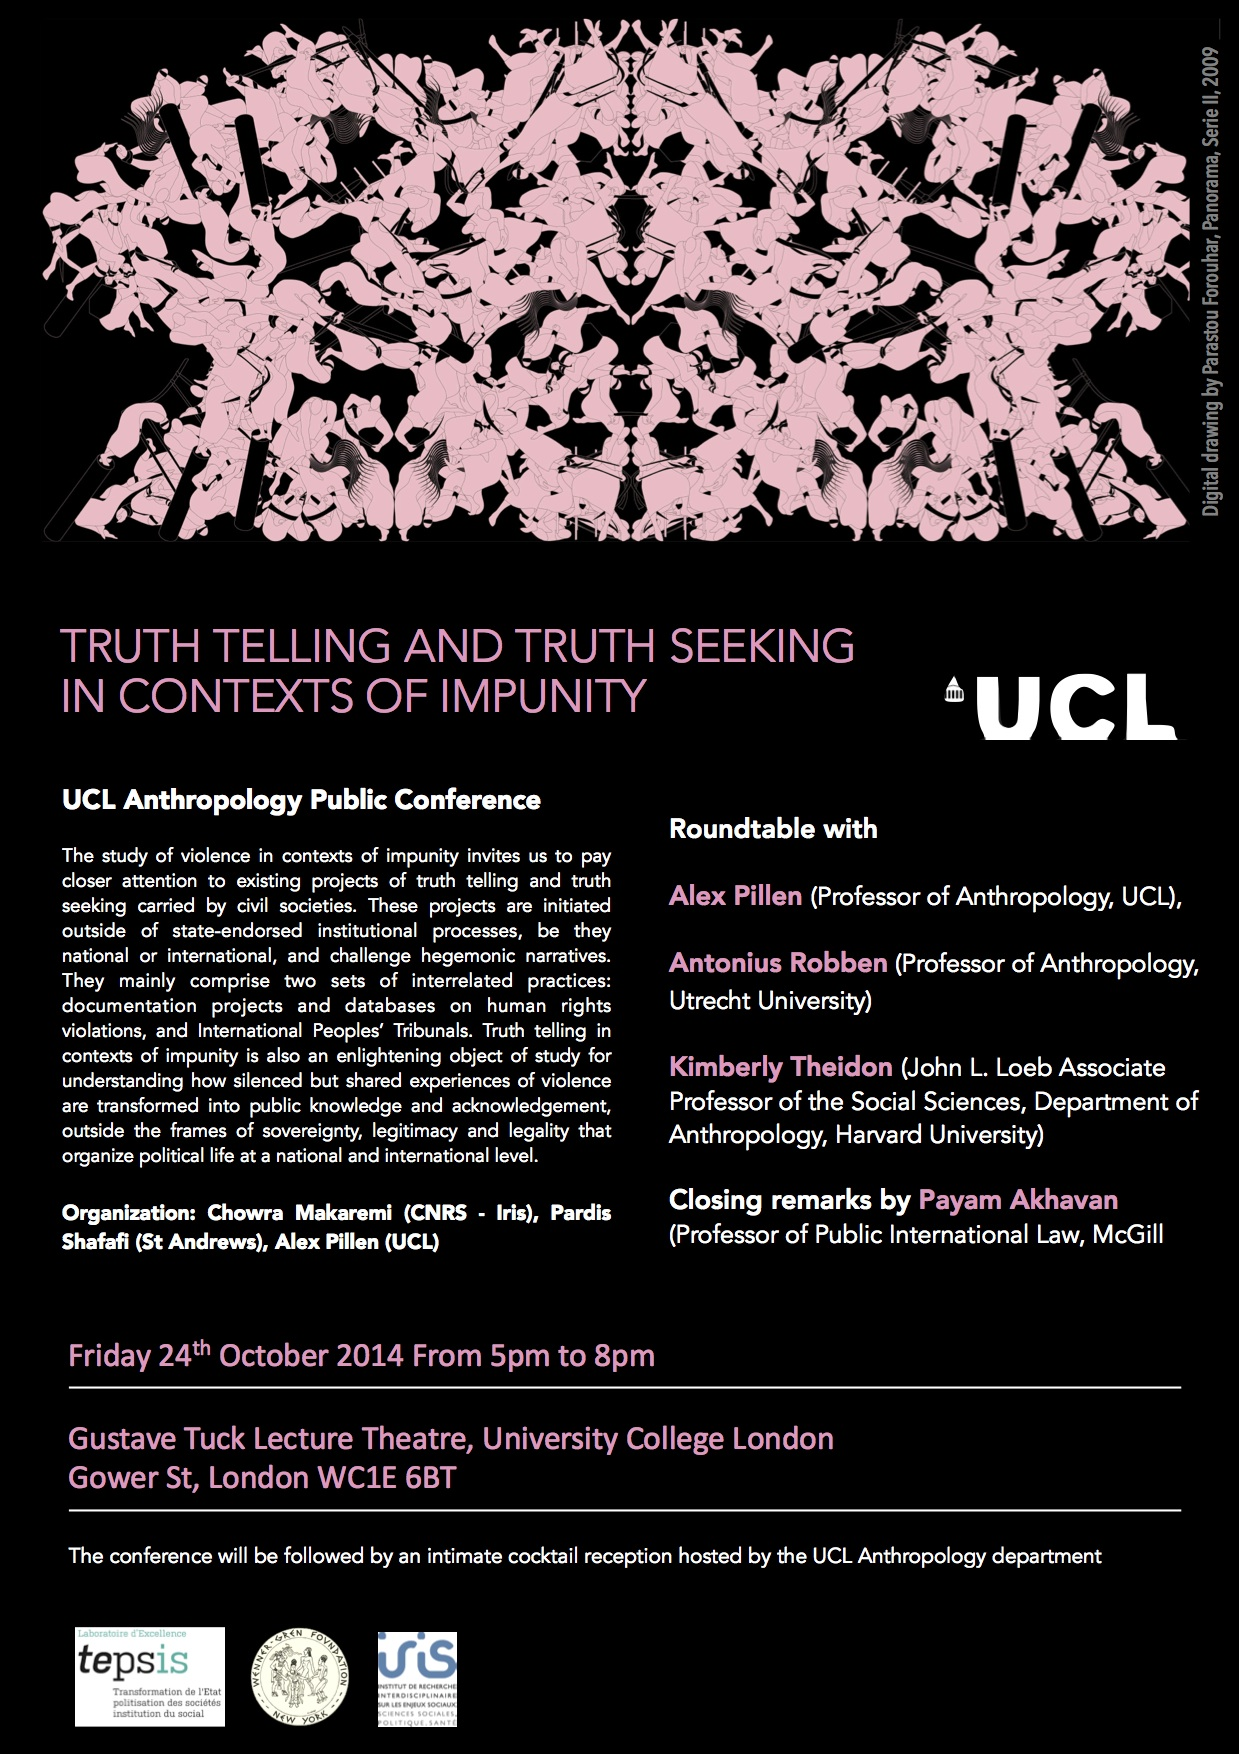 Truth Telling and Truth Seeking in Contexts of Impunity > 24 octobre 2014